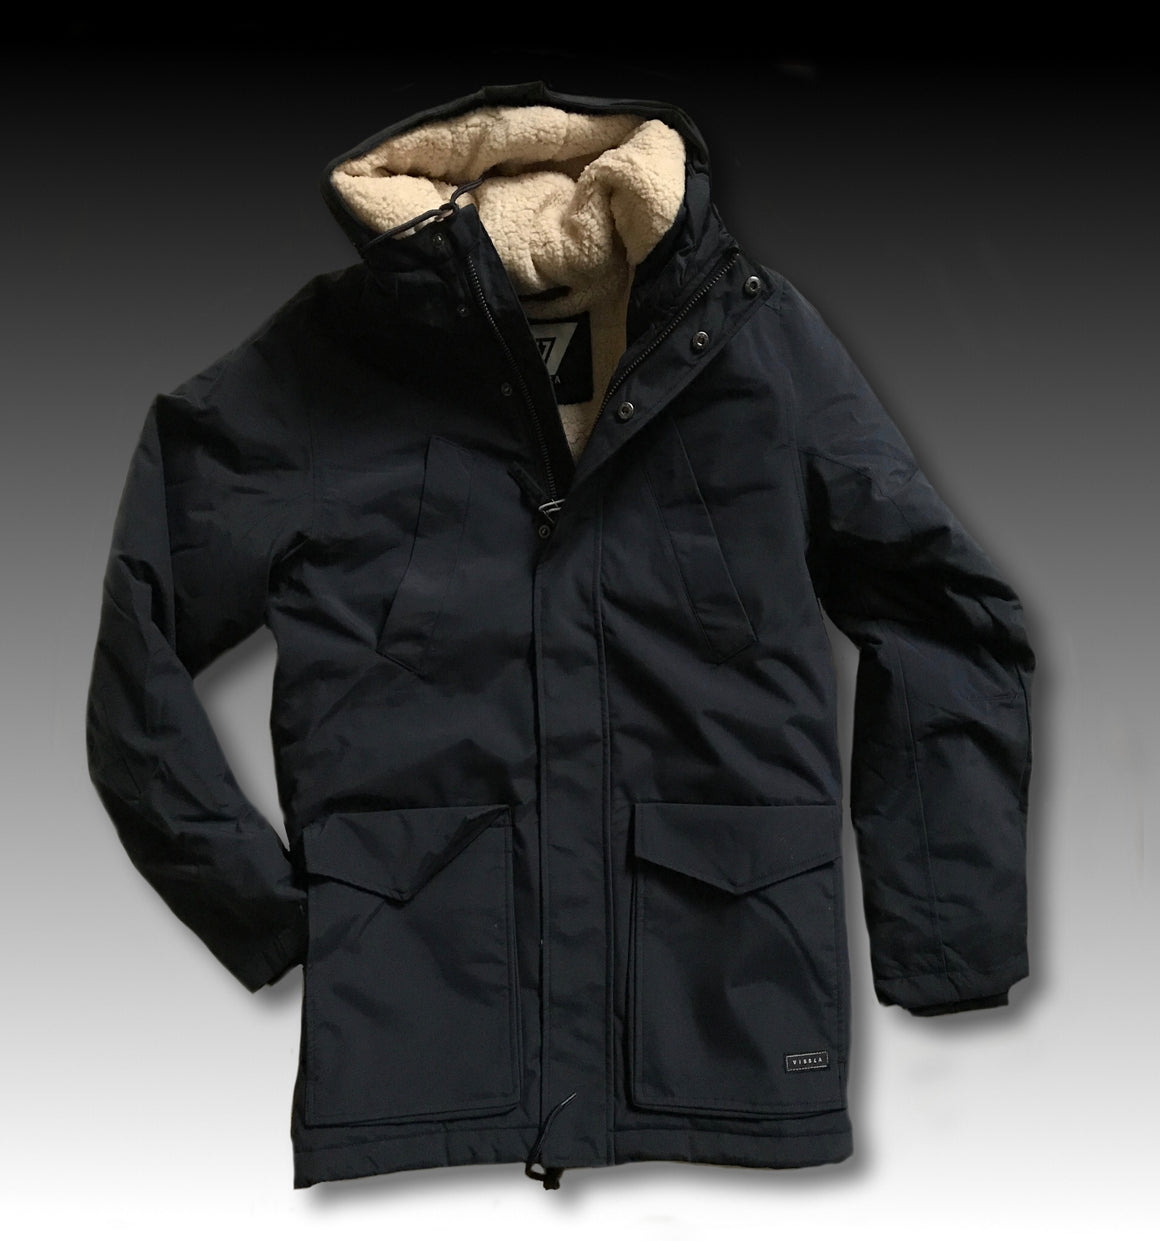 BACKLAND JACKET